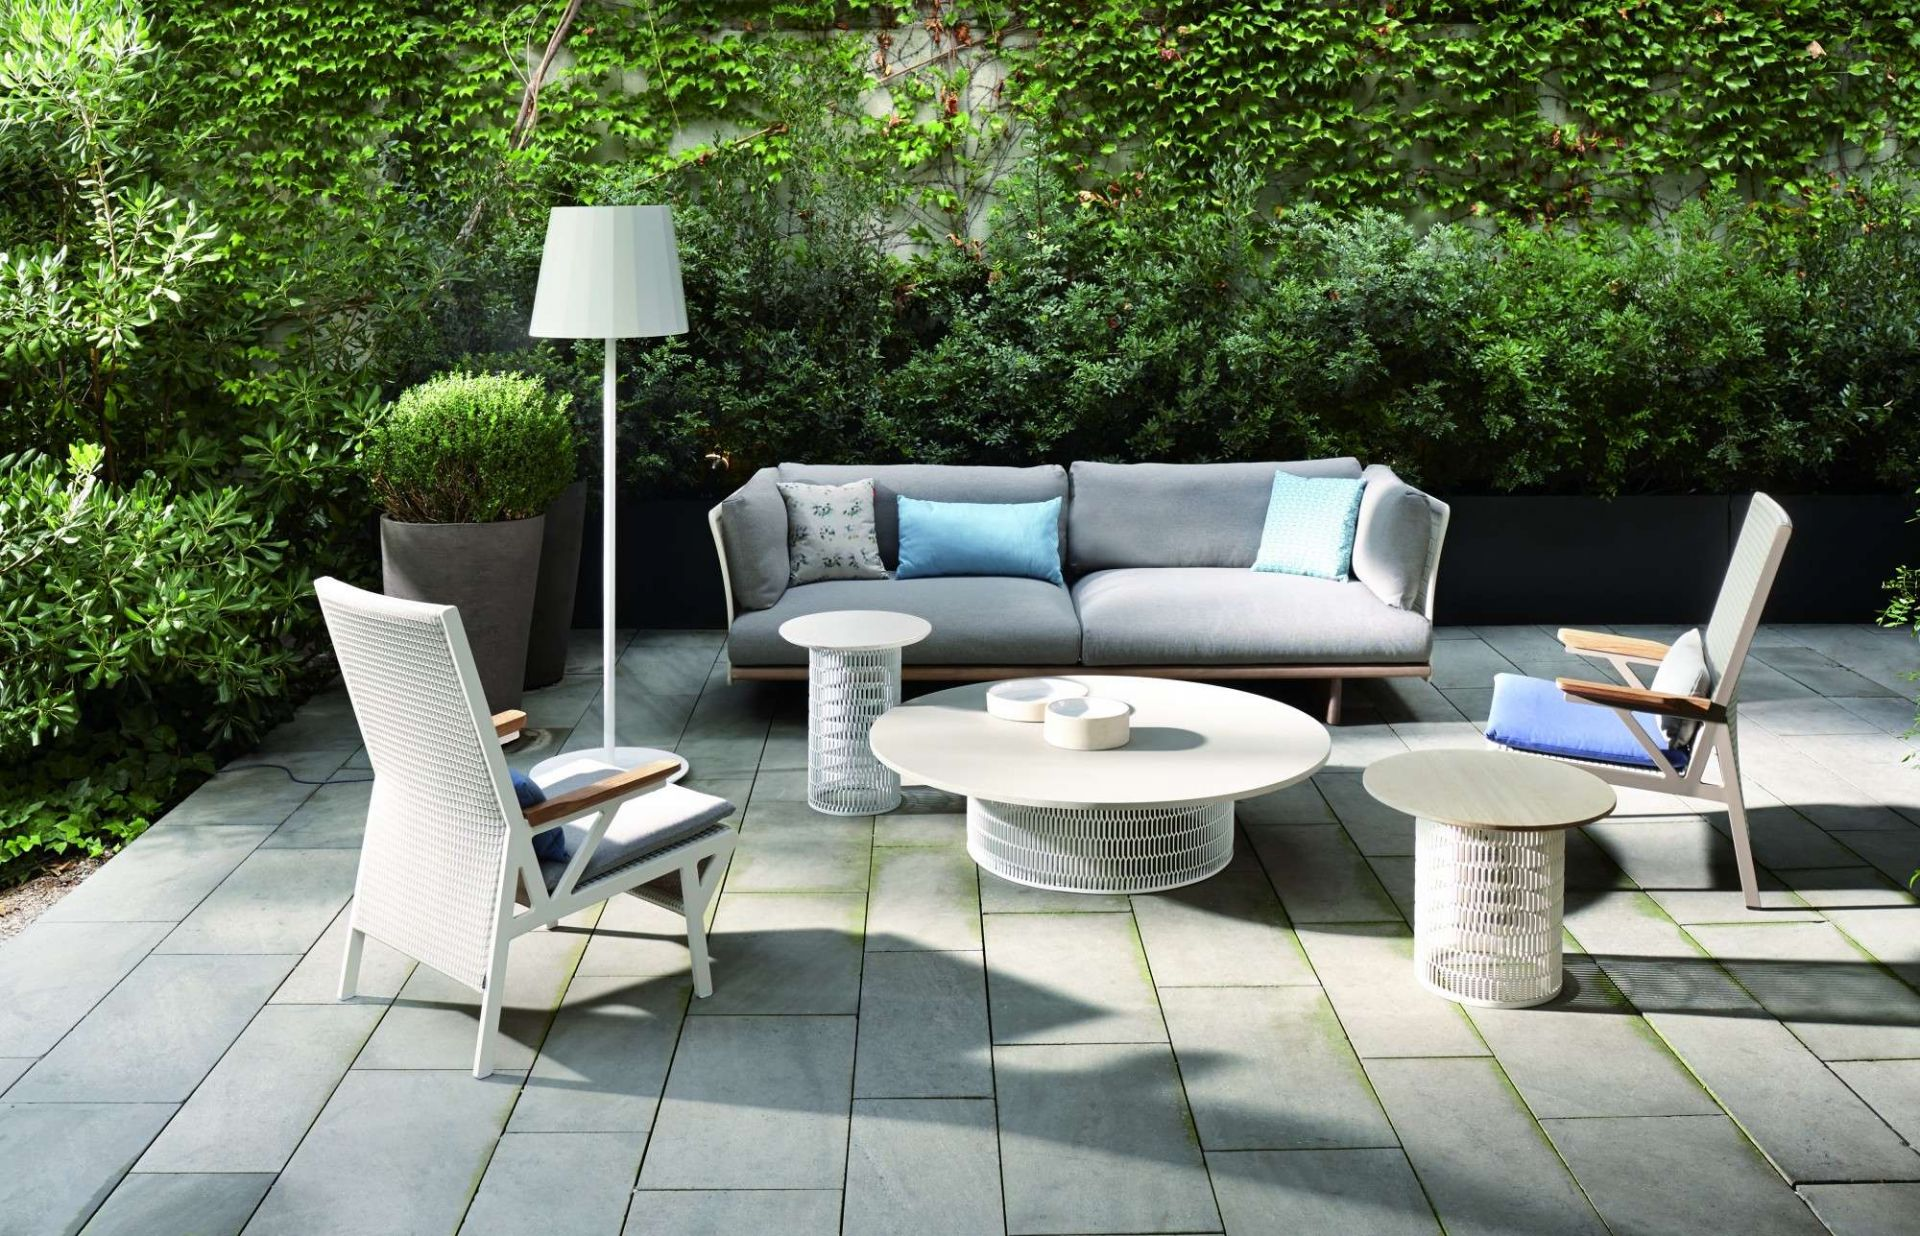 √ kettal outdoor furniture riva collection by jasper morrison for